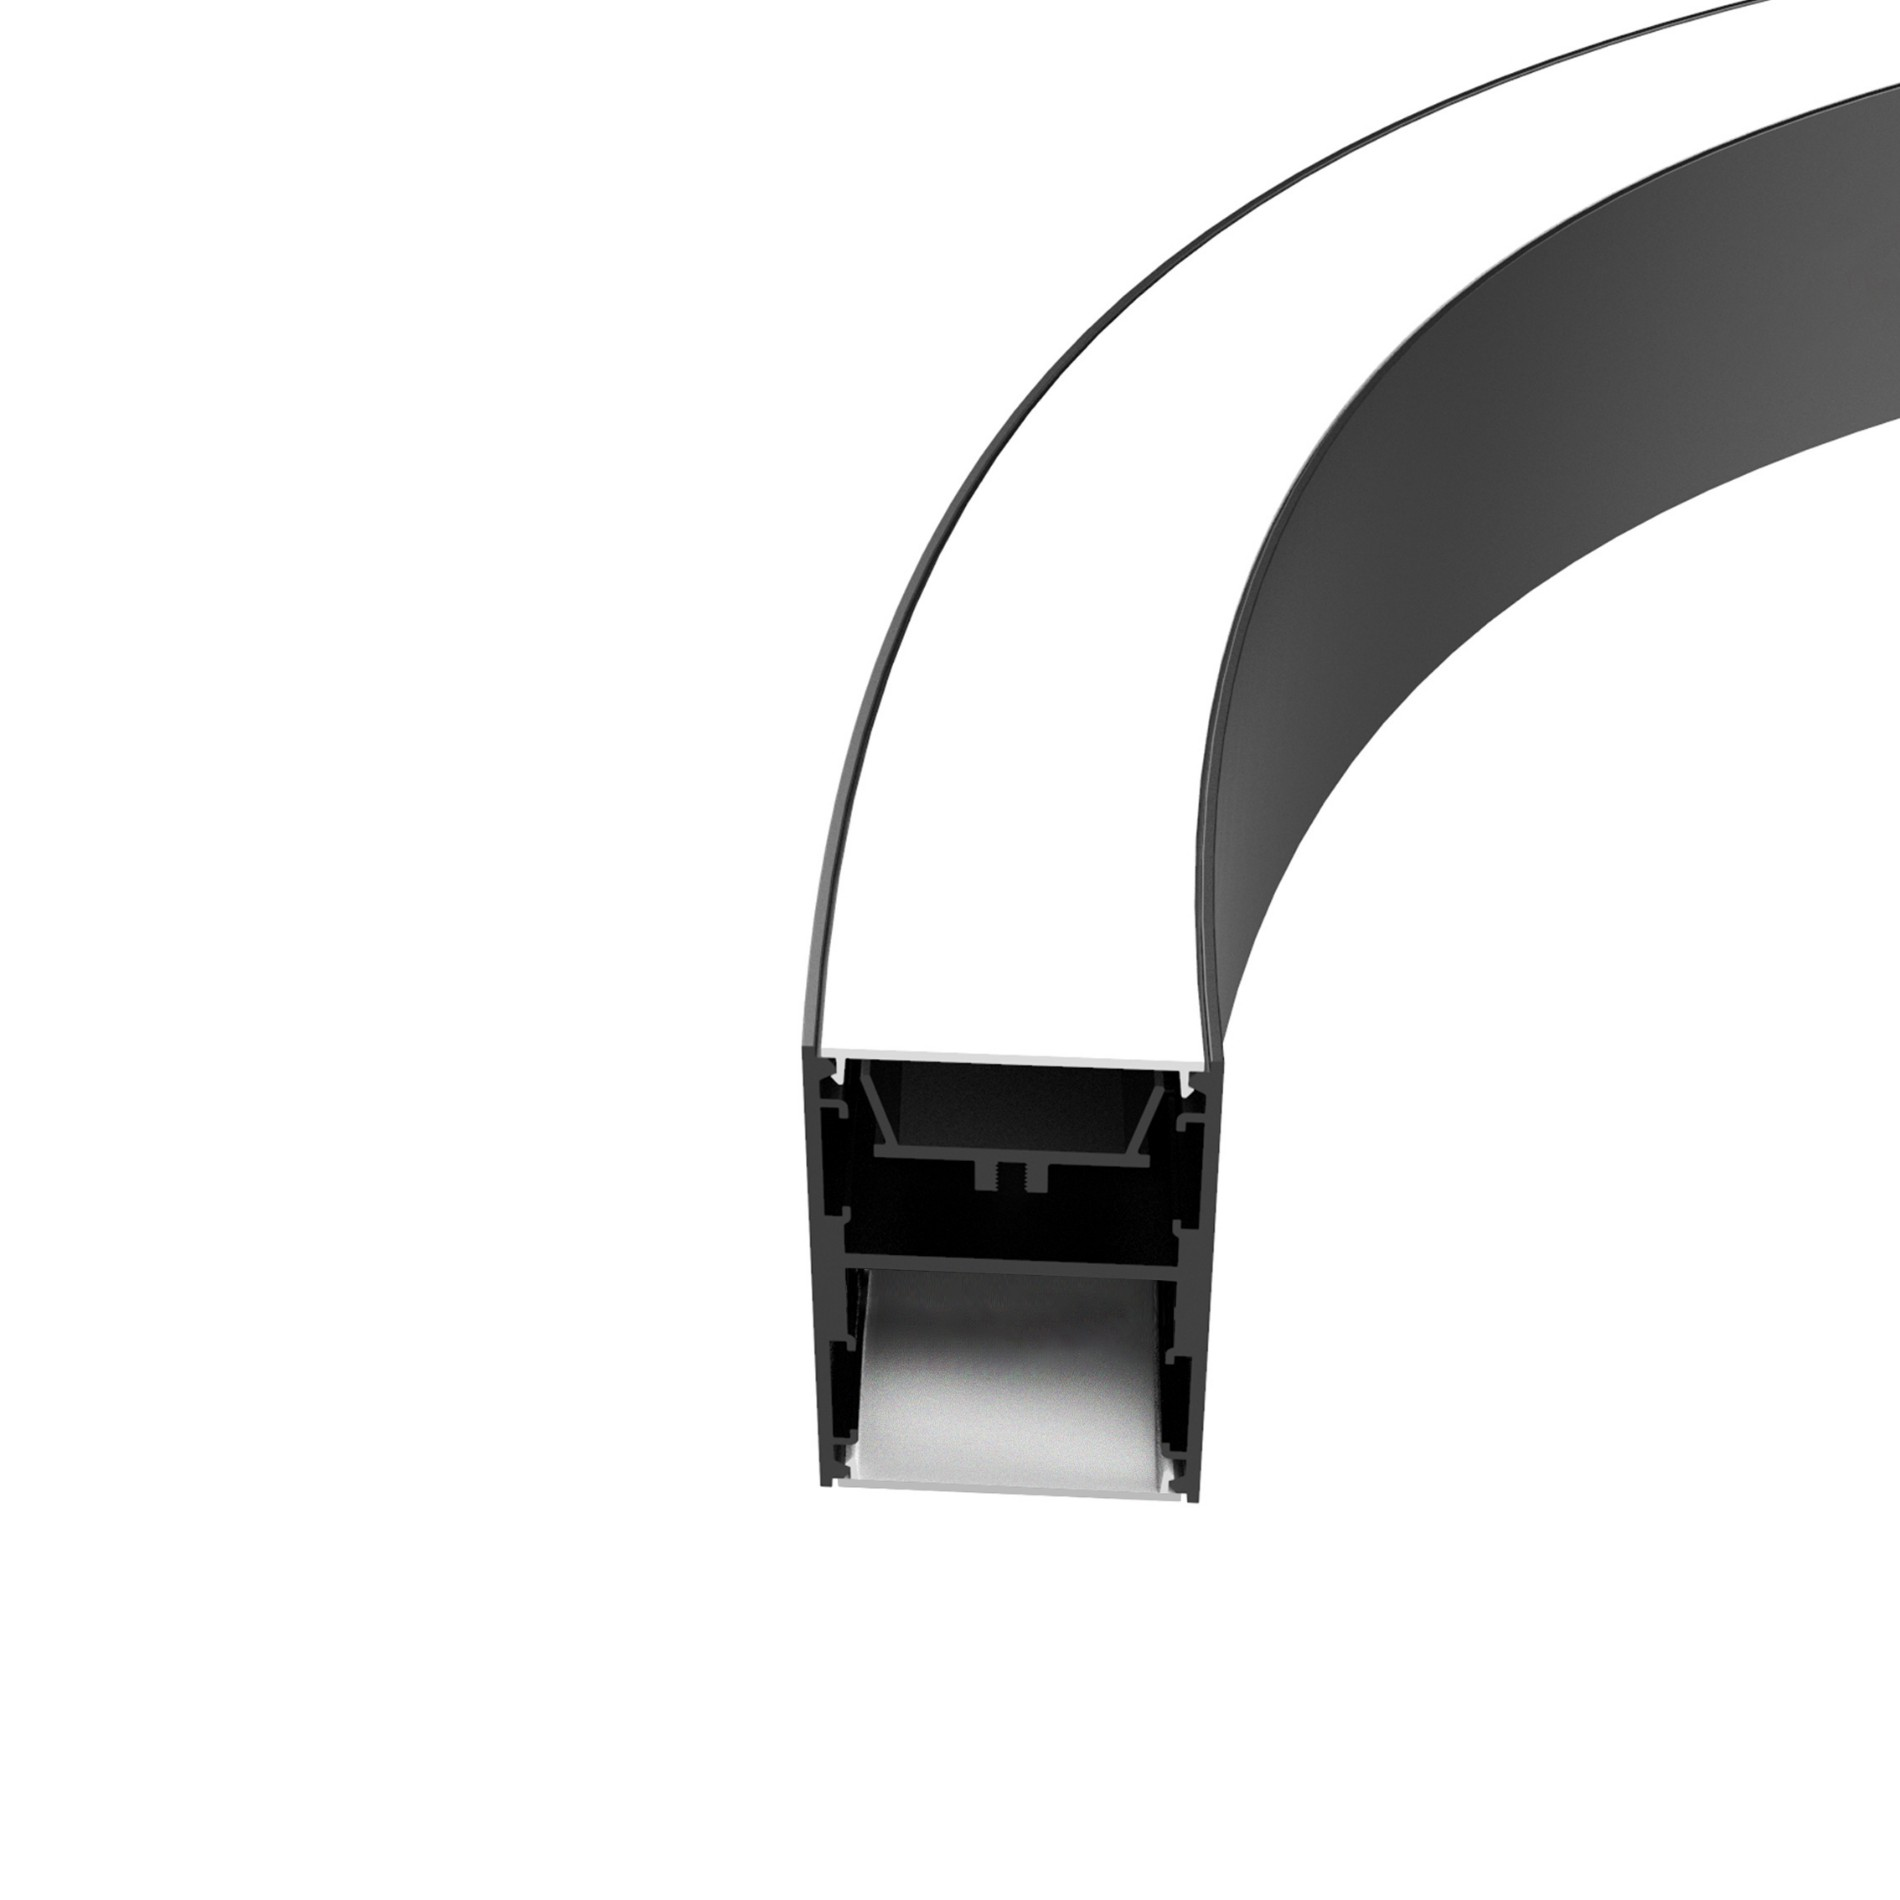 C50N 50mm wide Curved pendant profile 51x75mm Manufacturers, C50N 50mm wide Curved pendant profile 51x75mm Factory, Supply C50N 50mm wide Curved pendant profile 51x75mm